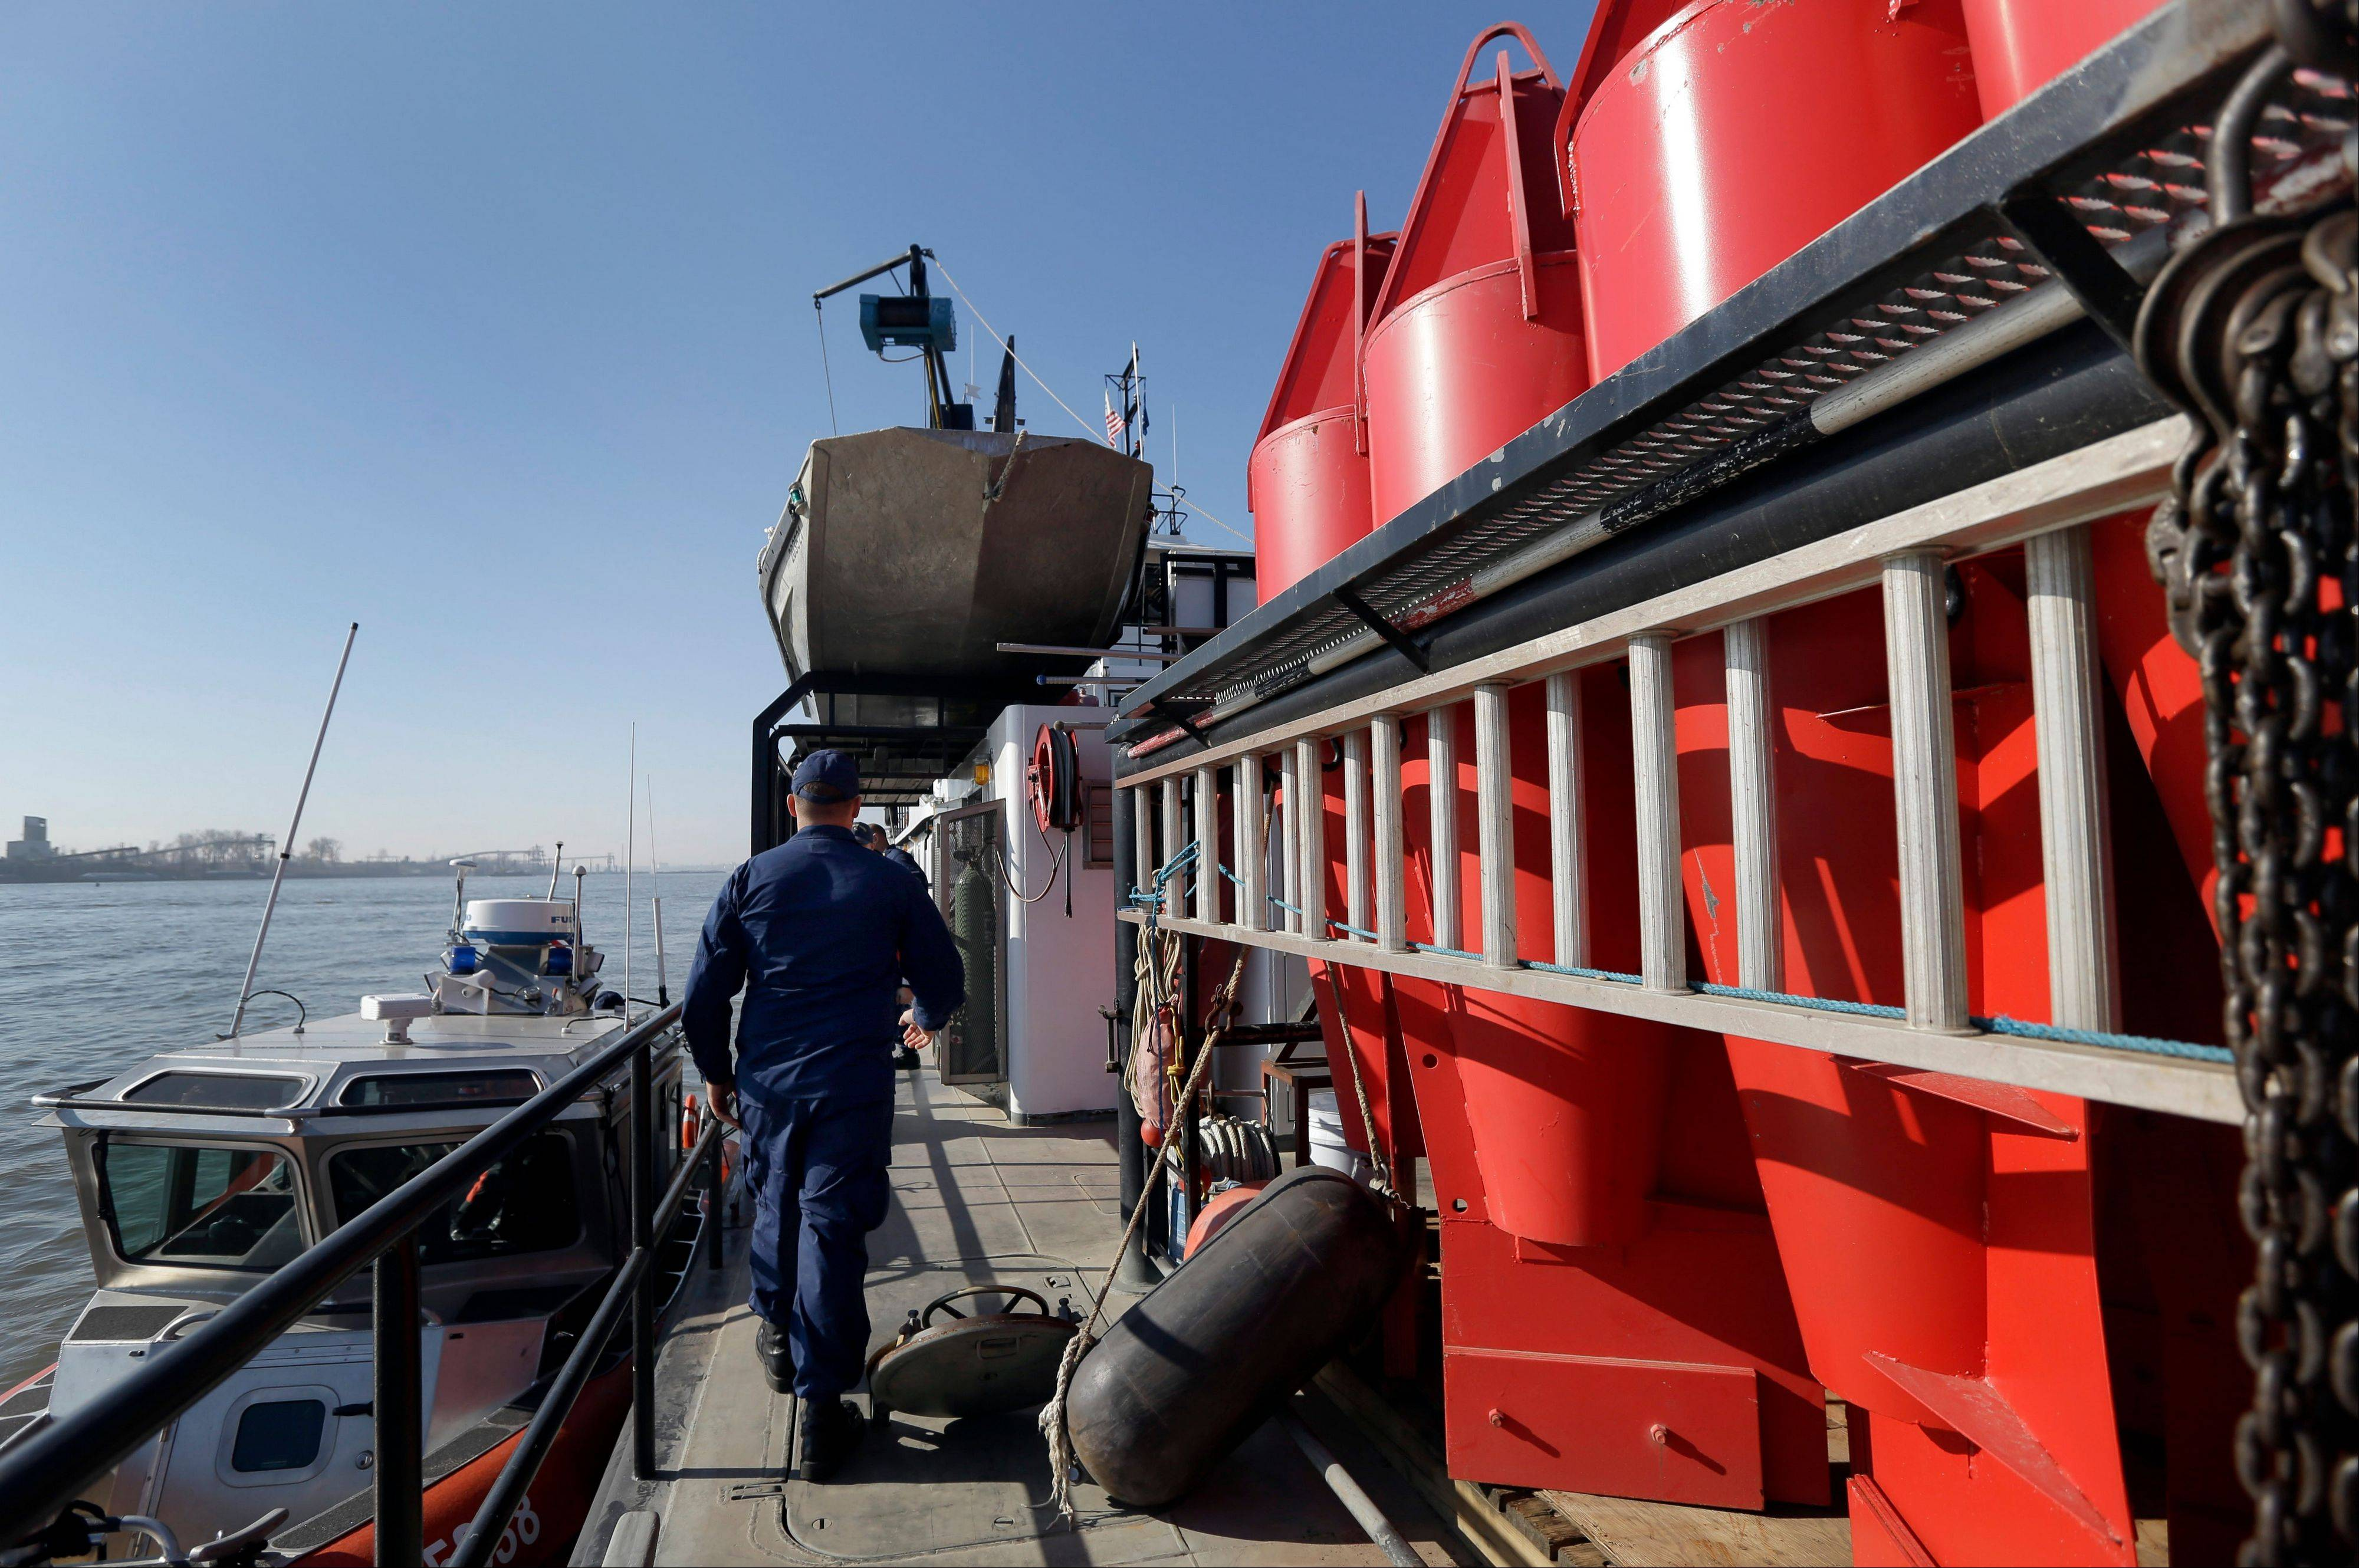 A member of the U.S. Coast Guard walks Friday on the deck of a barge used to place navigational buoys, seen at right, along the Mississippi River to aid vessels as they travel up and down the waterway.